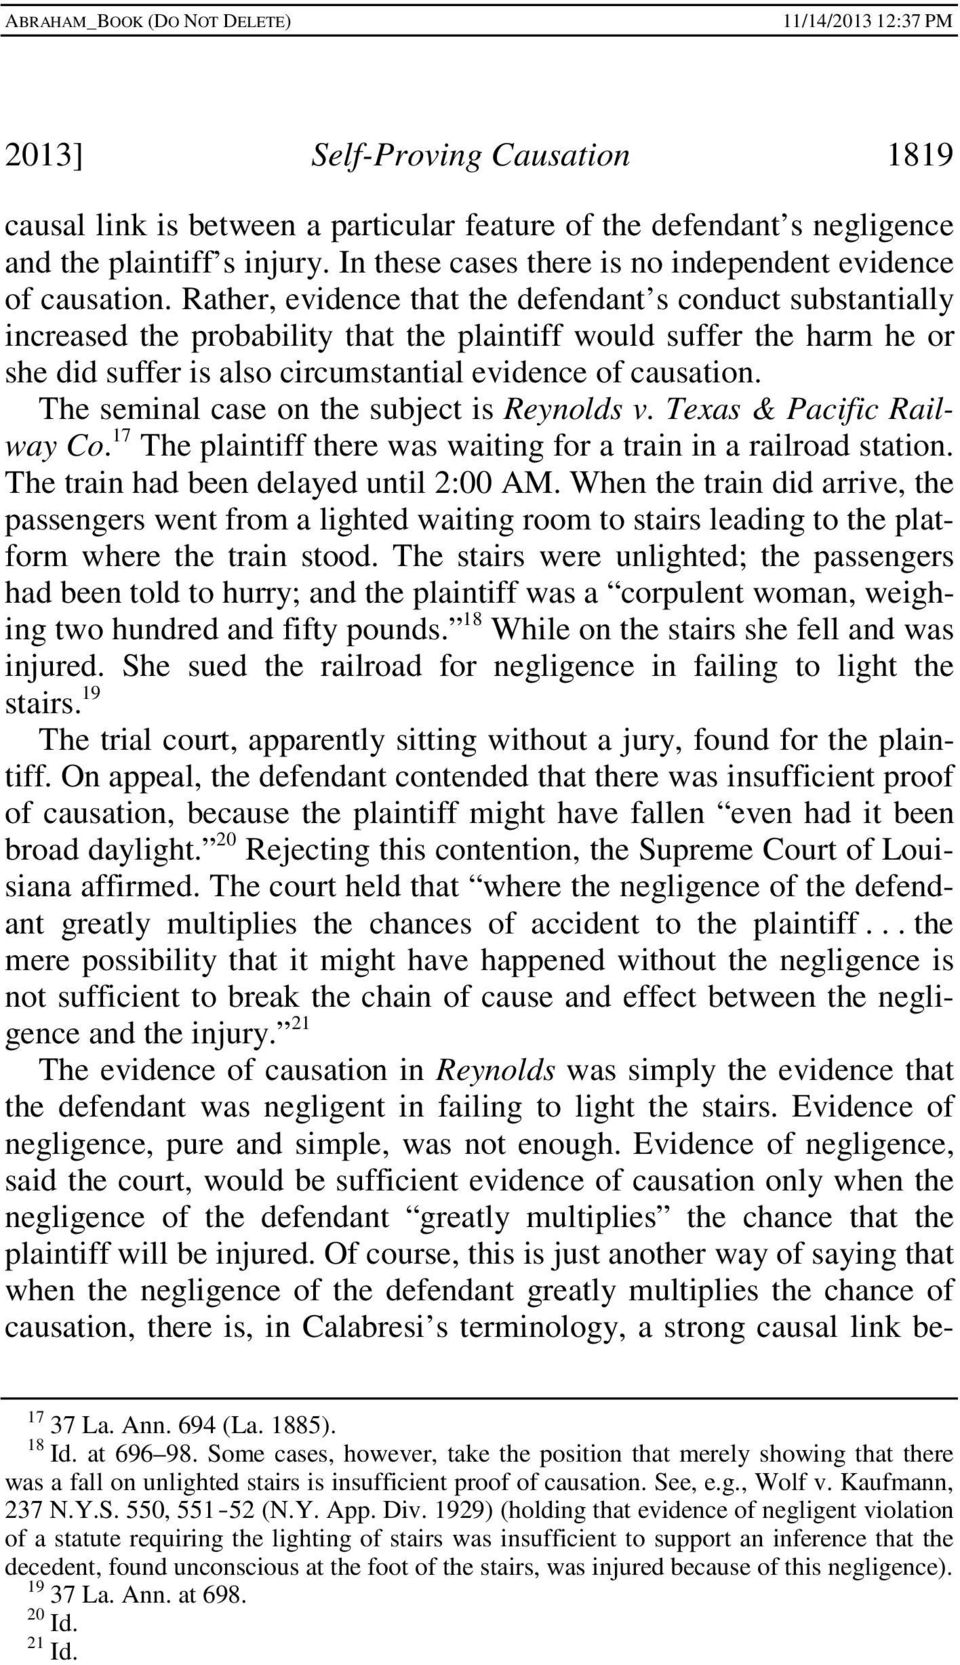 The seminal case on the subject is Reynolds v. Texas & Pacific Railway Co. 17 The plaintiff there was waiting for a train in a railroad station. The train had been delayed until 2:00 AM.